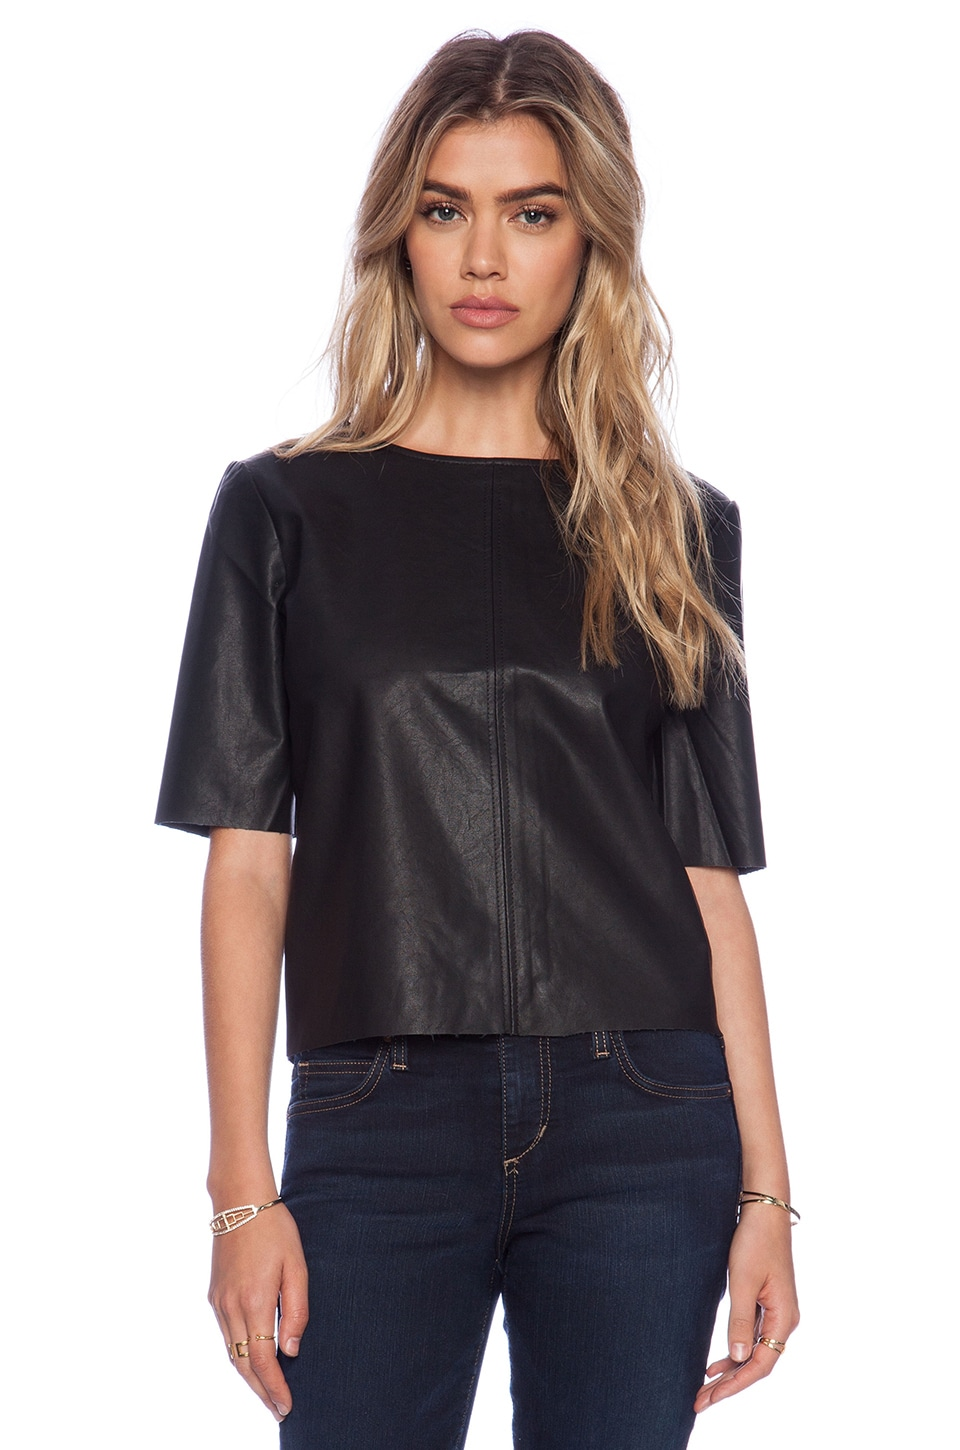 BB Dakota Pia Faux Leather Top in Black